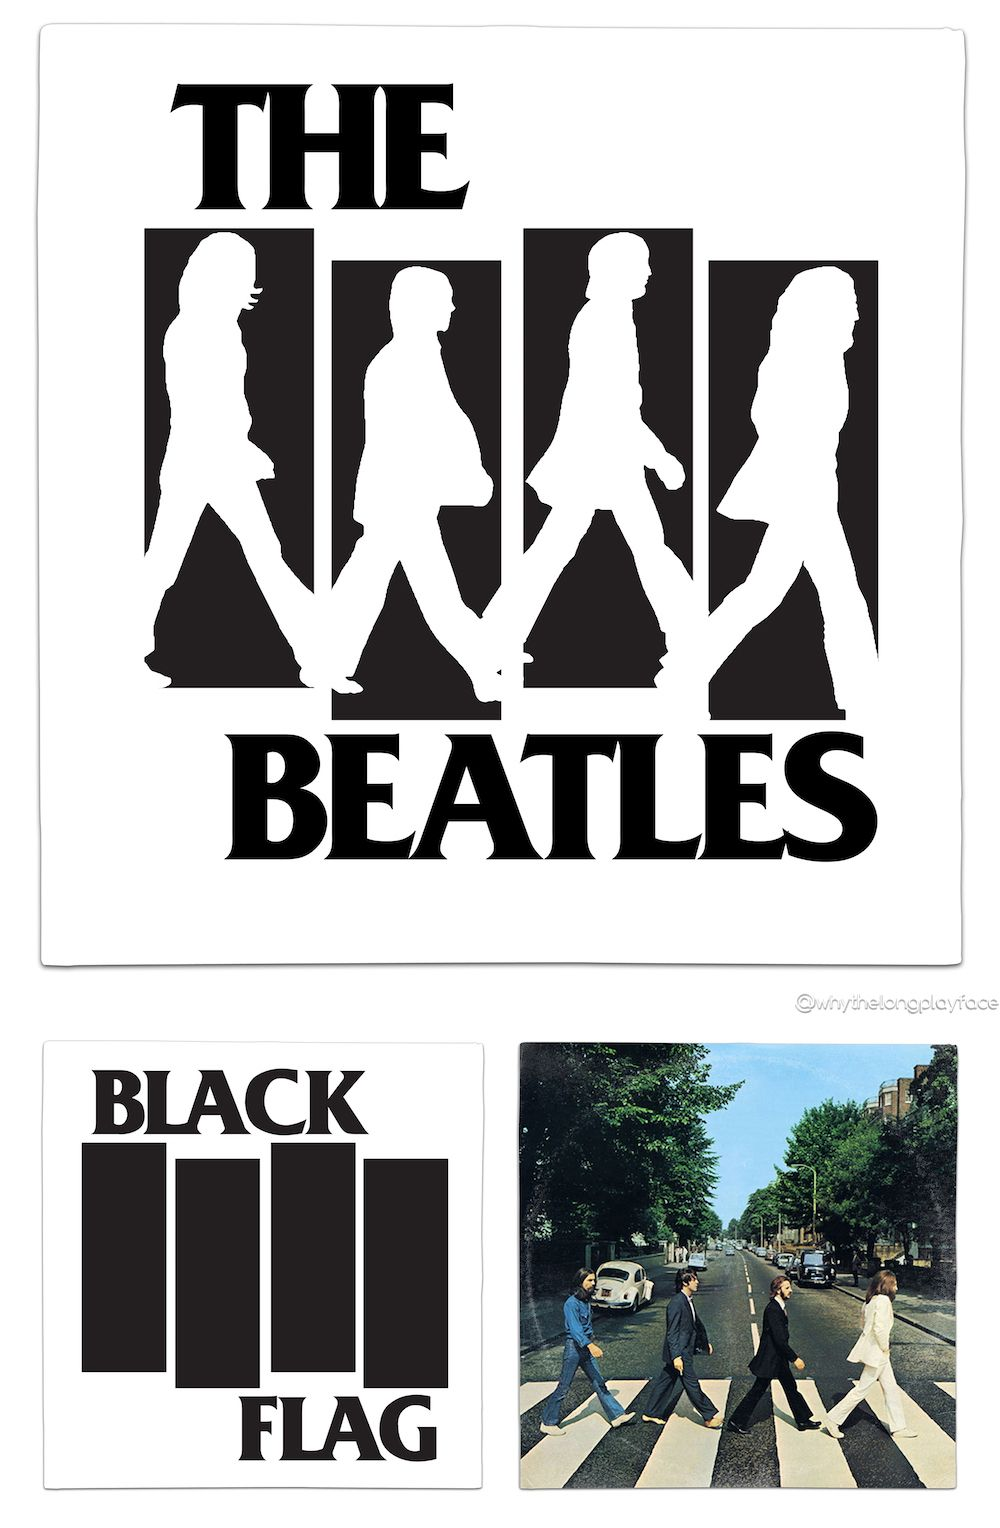 Black flag logo the beatles abbey road mash up vinyl record art print alternative